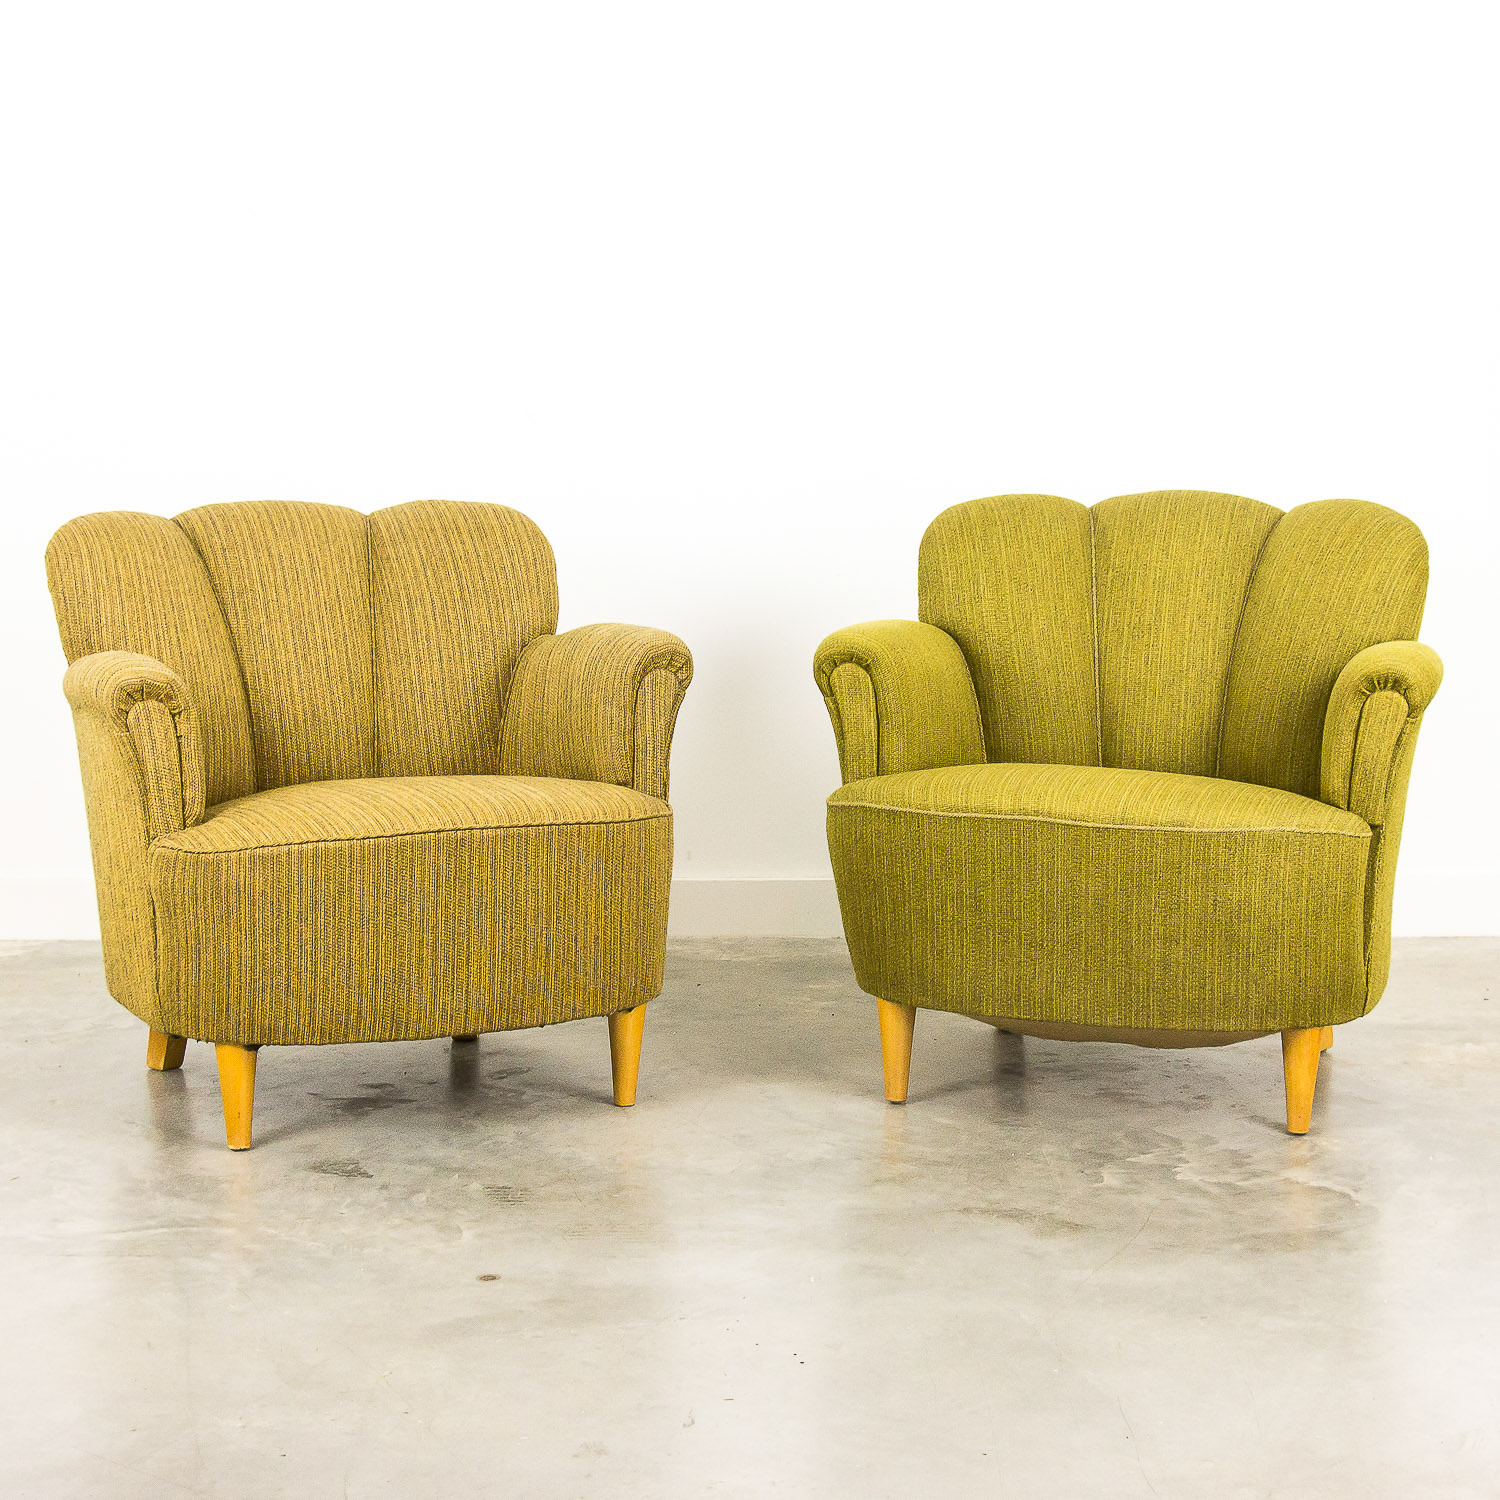 Set of 2 vintage shellback cocktail chairs